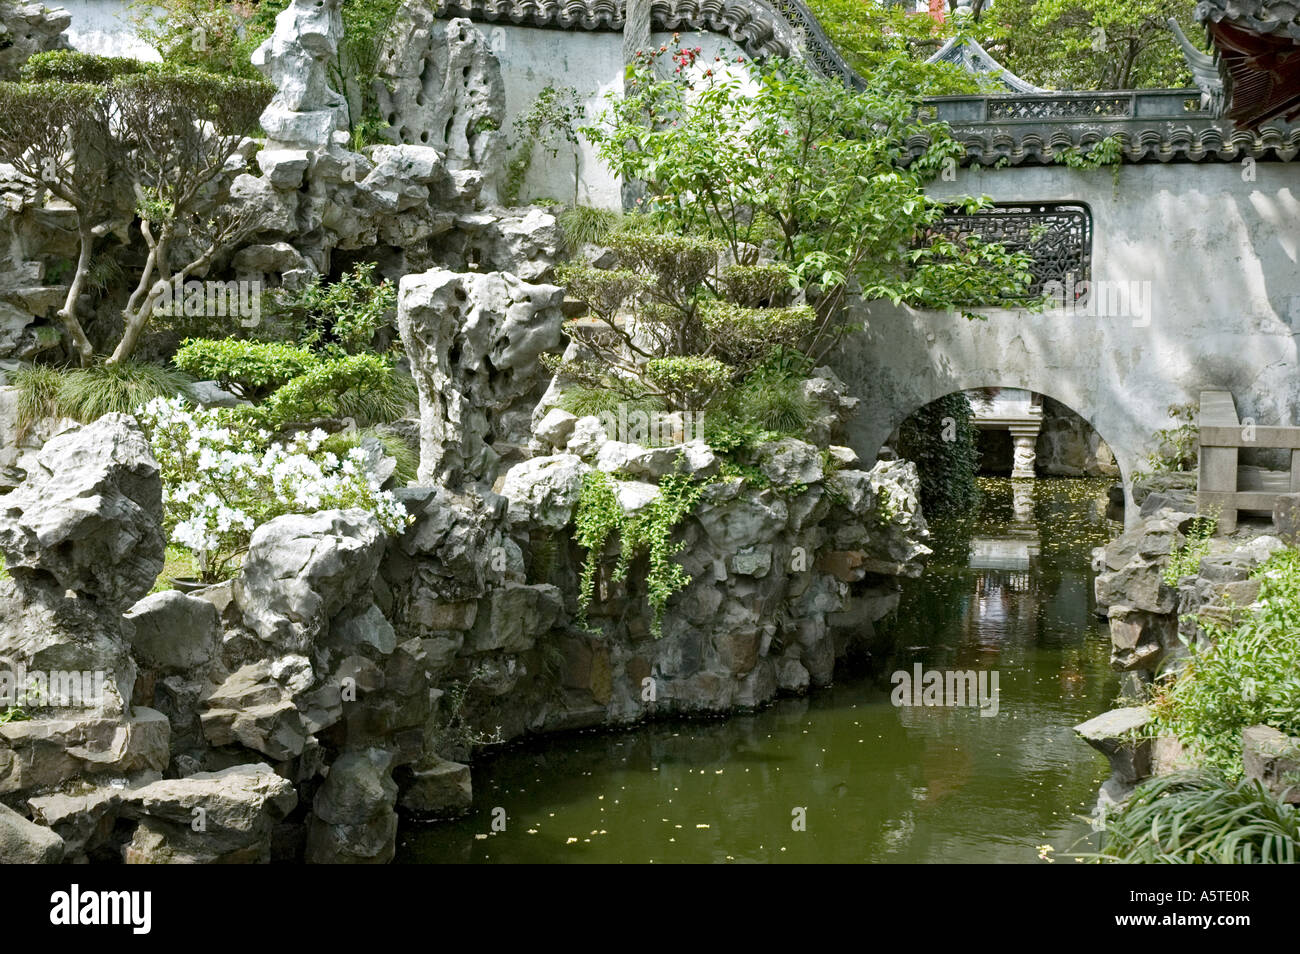 Small Stream flowing between flower embedded rock formation and under a Bridge, Yu Yuan Garden, Shanghai - Stock Image